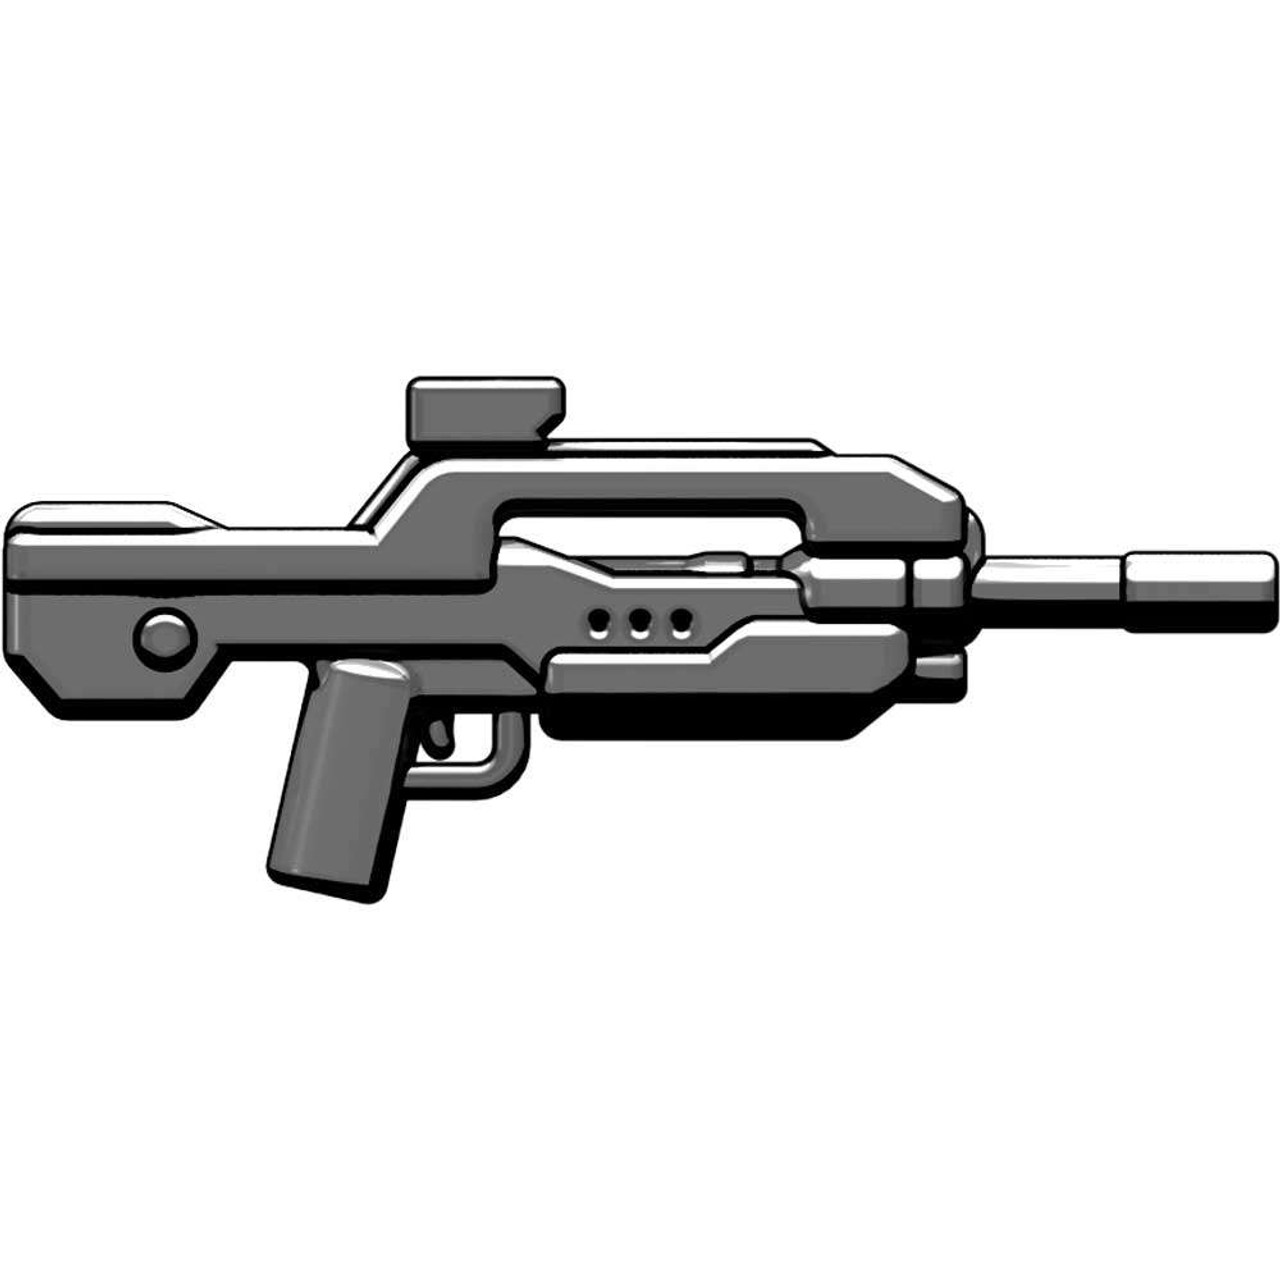 BrickArms Weapons XBR4 Experimental Battle Rifle #4 2.5-Inch #4 [Gunmetal]